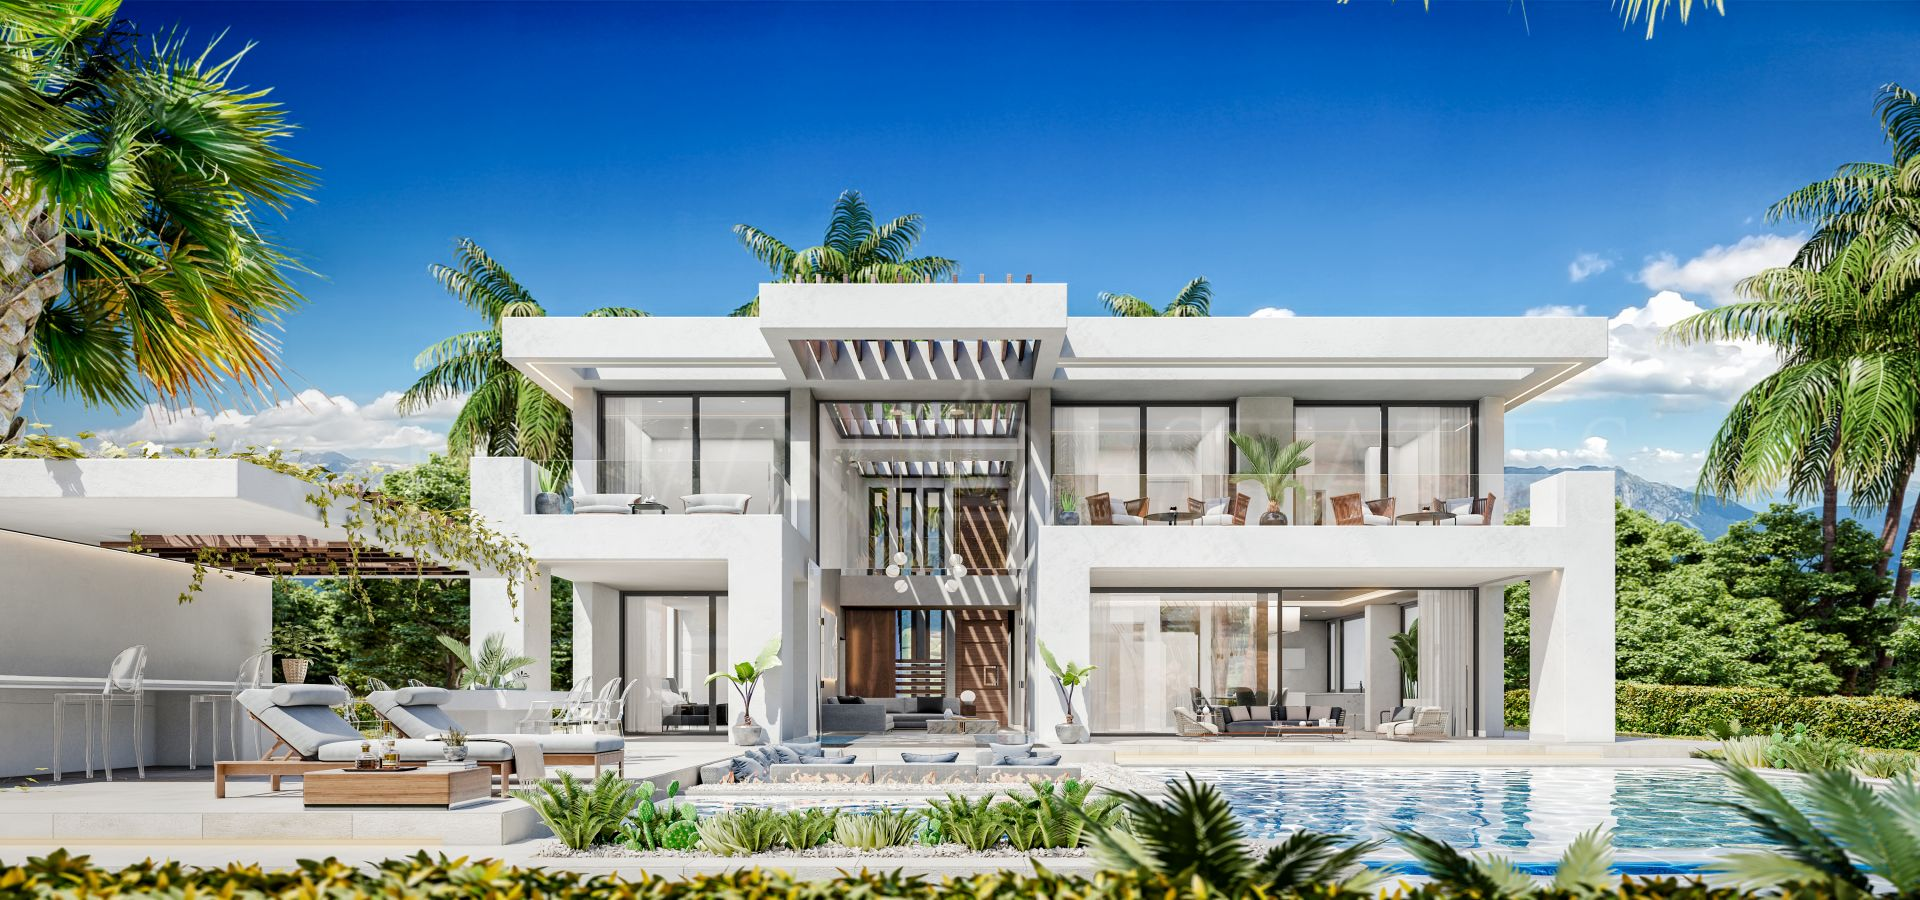 New Heights, exclusive villas in the sought-after New Golden Mile area